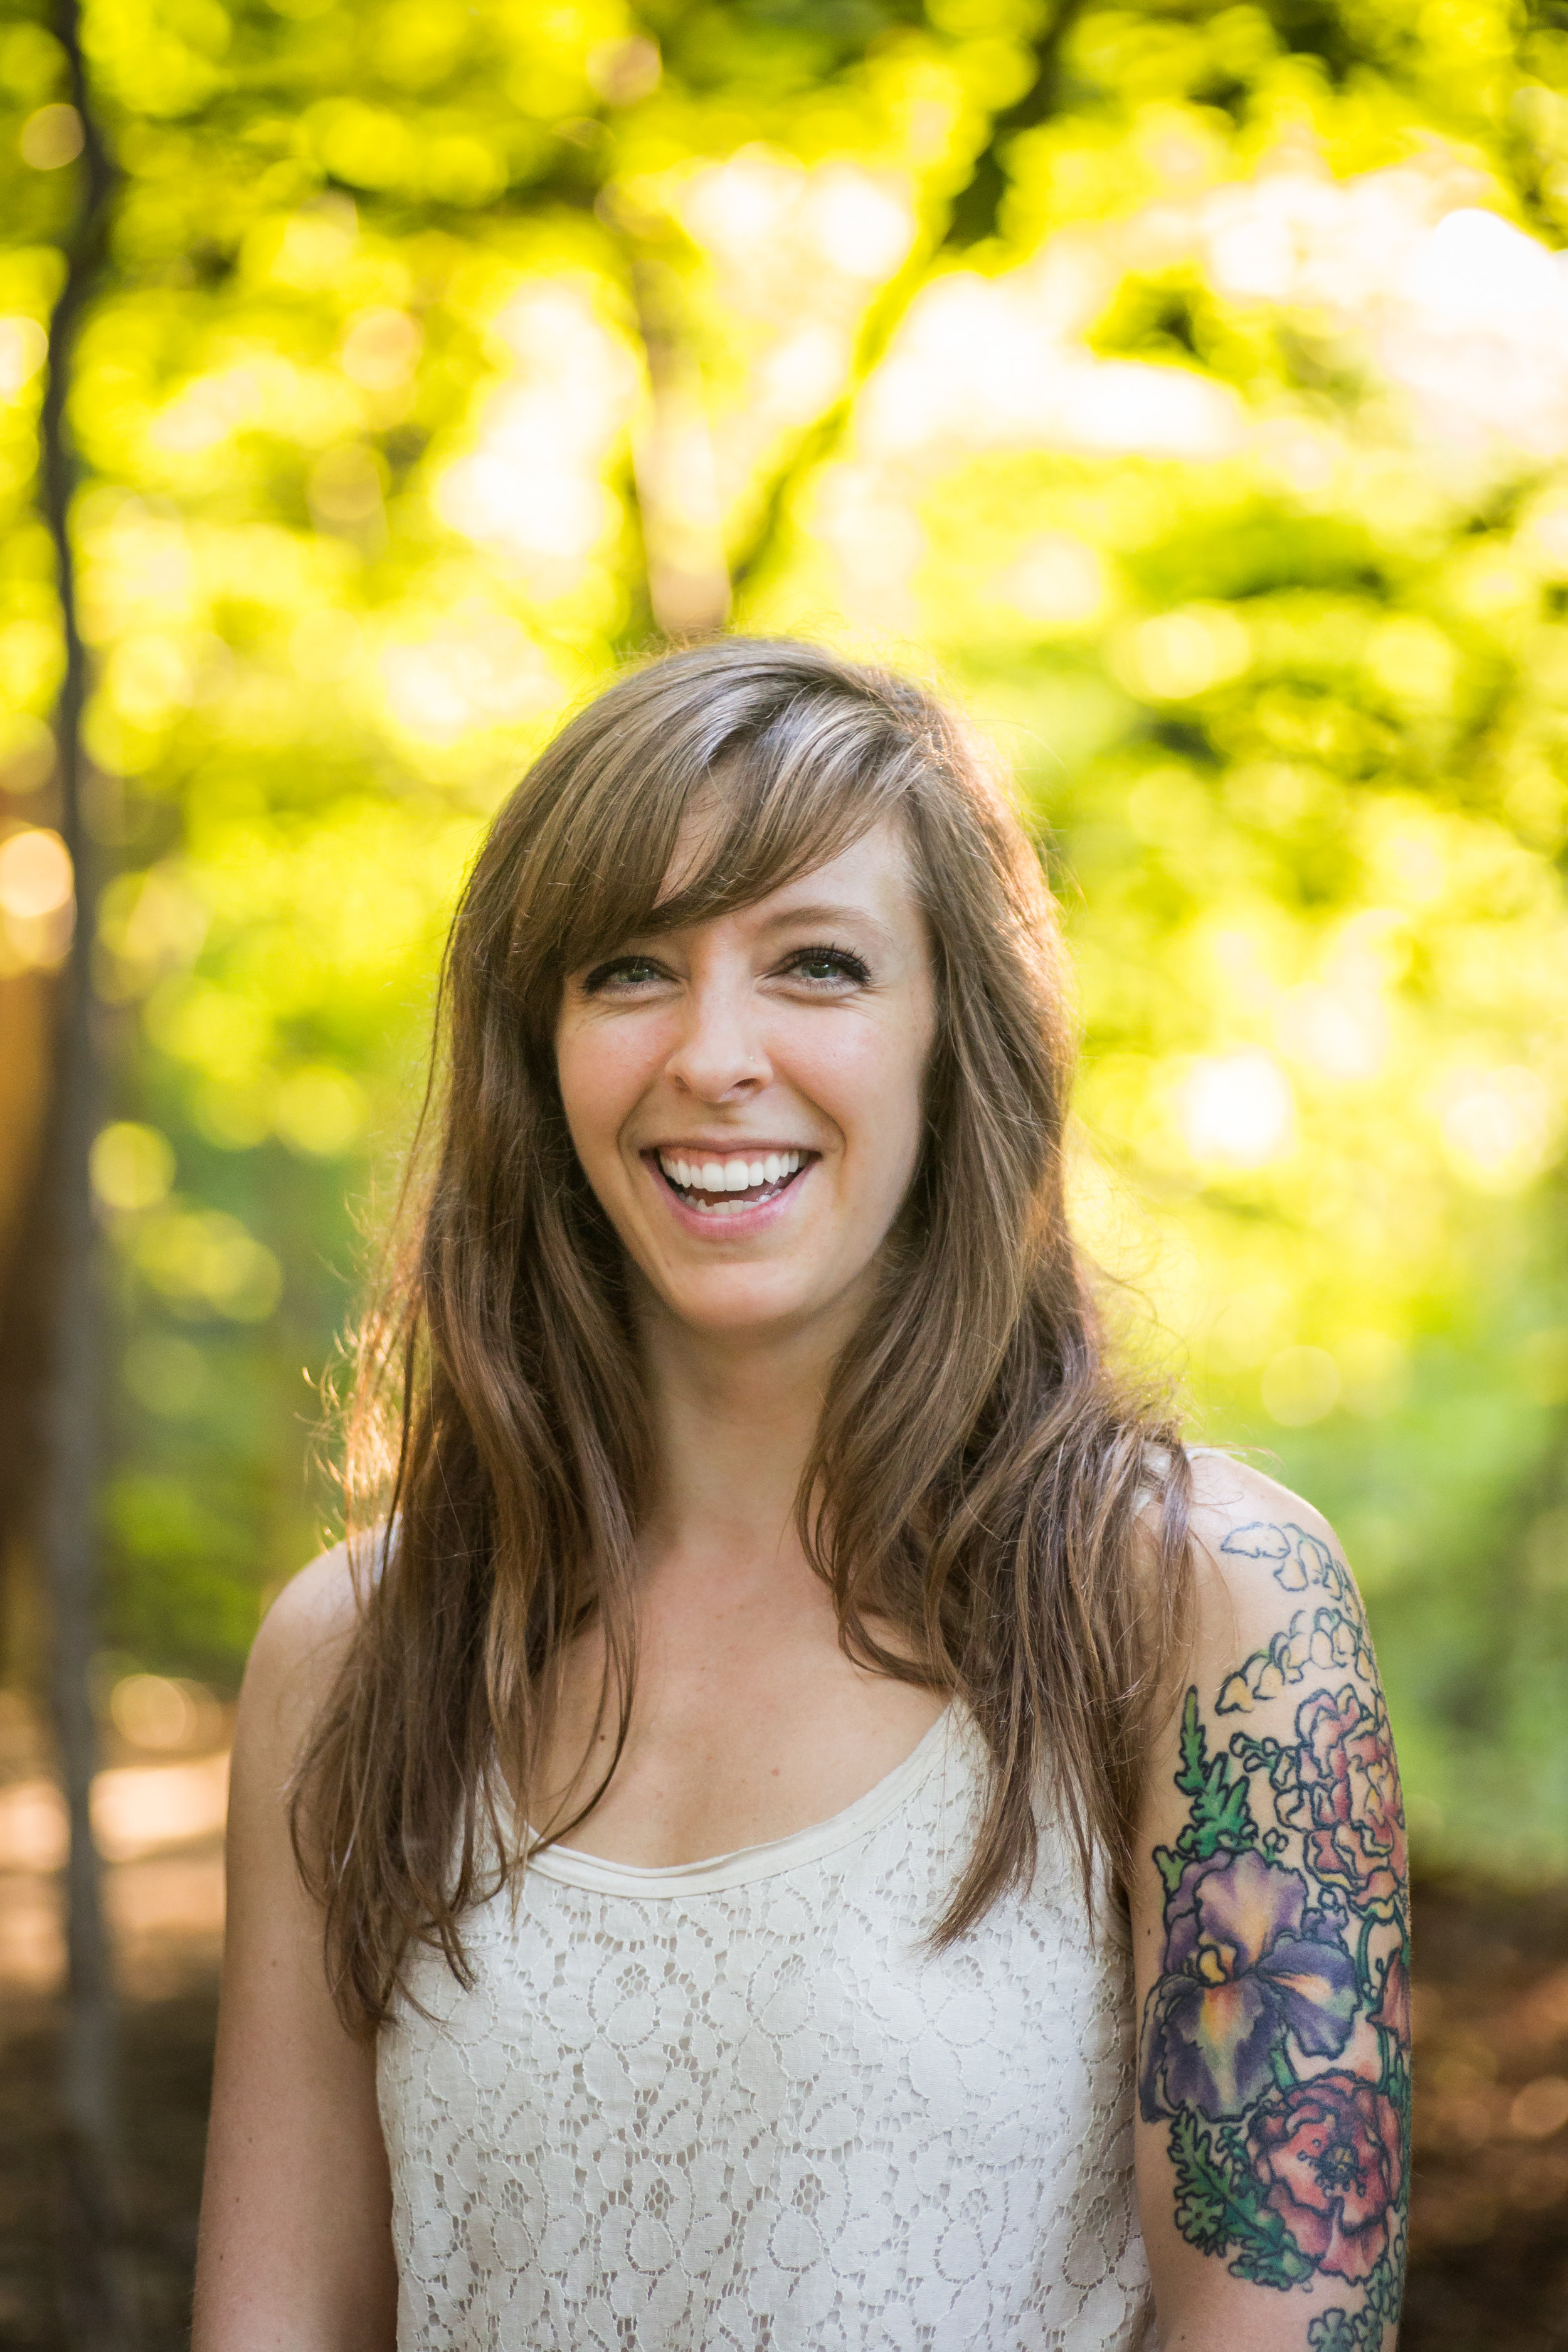 Rosslyn is a yoga instructor, graphic designer and mentor in the Laurel Highlands